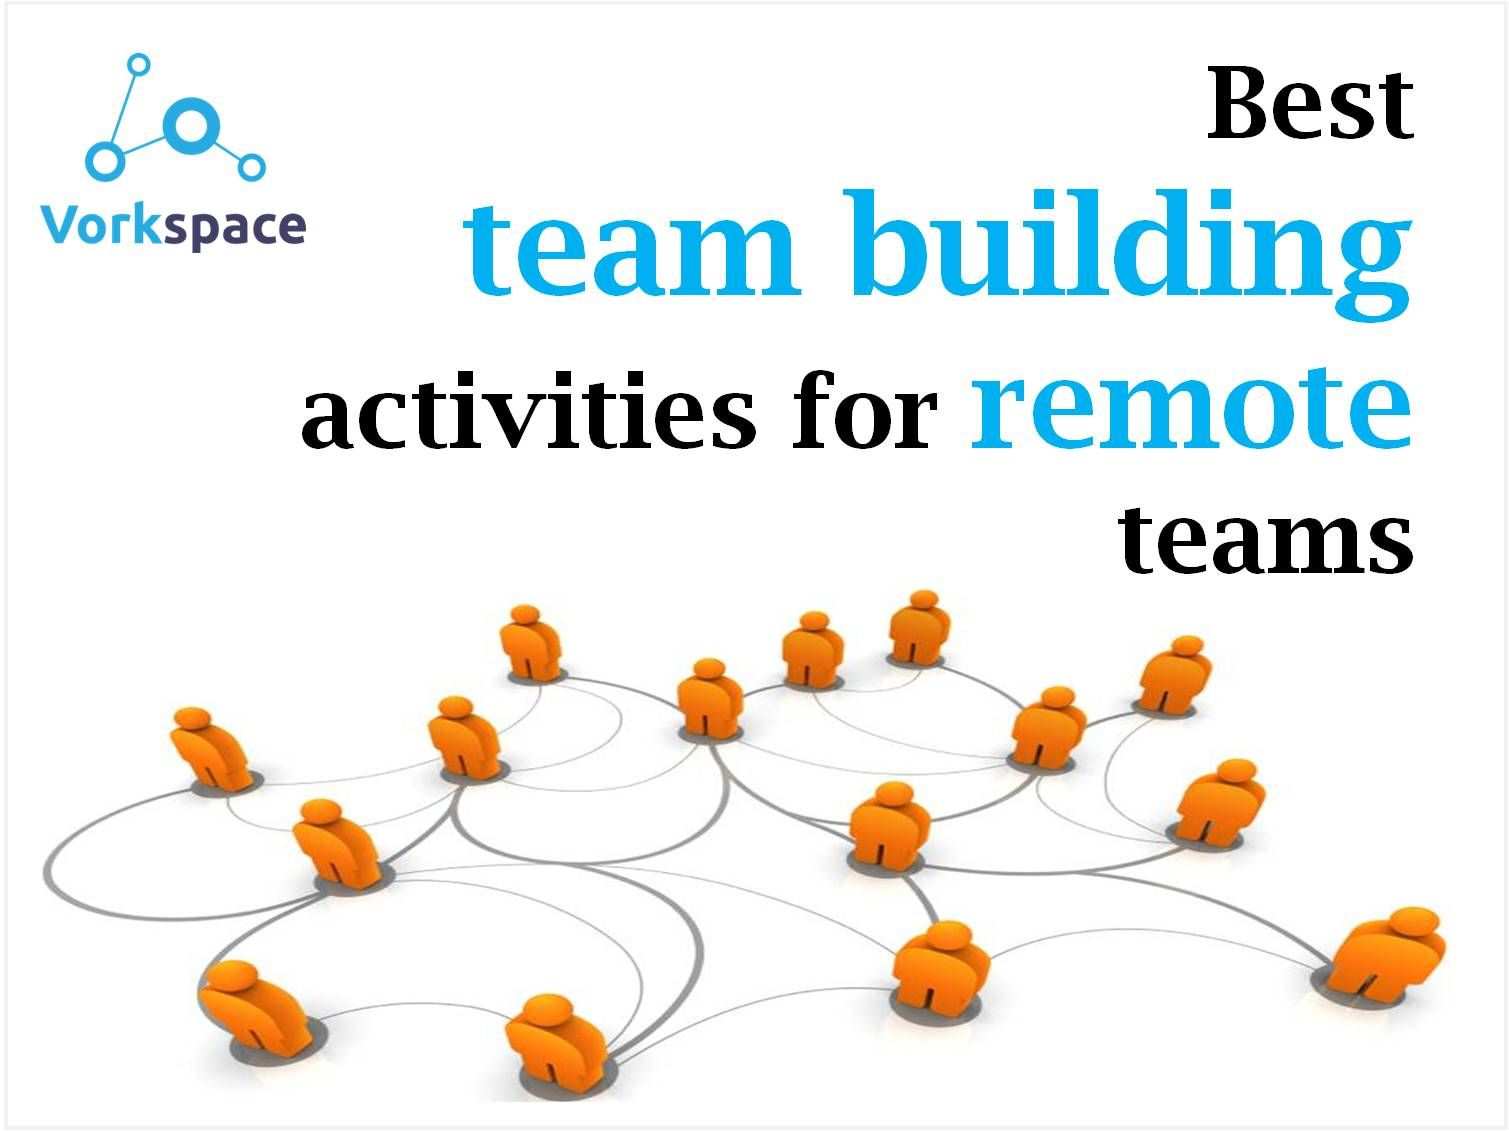 best team building activities for remote teams remote team made best team building activities for remote teams